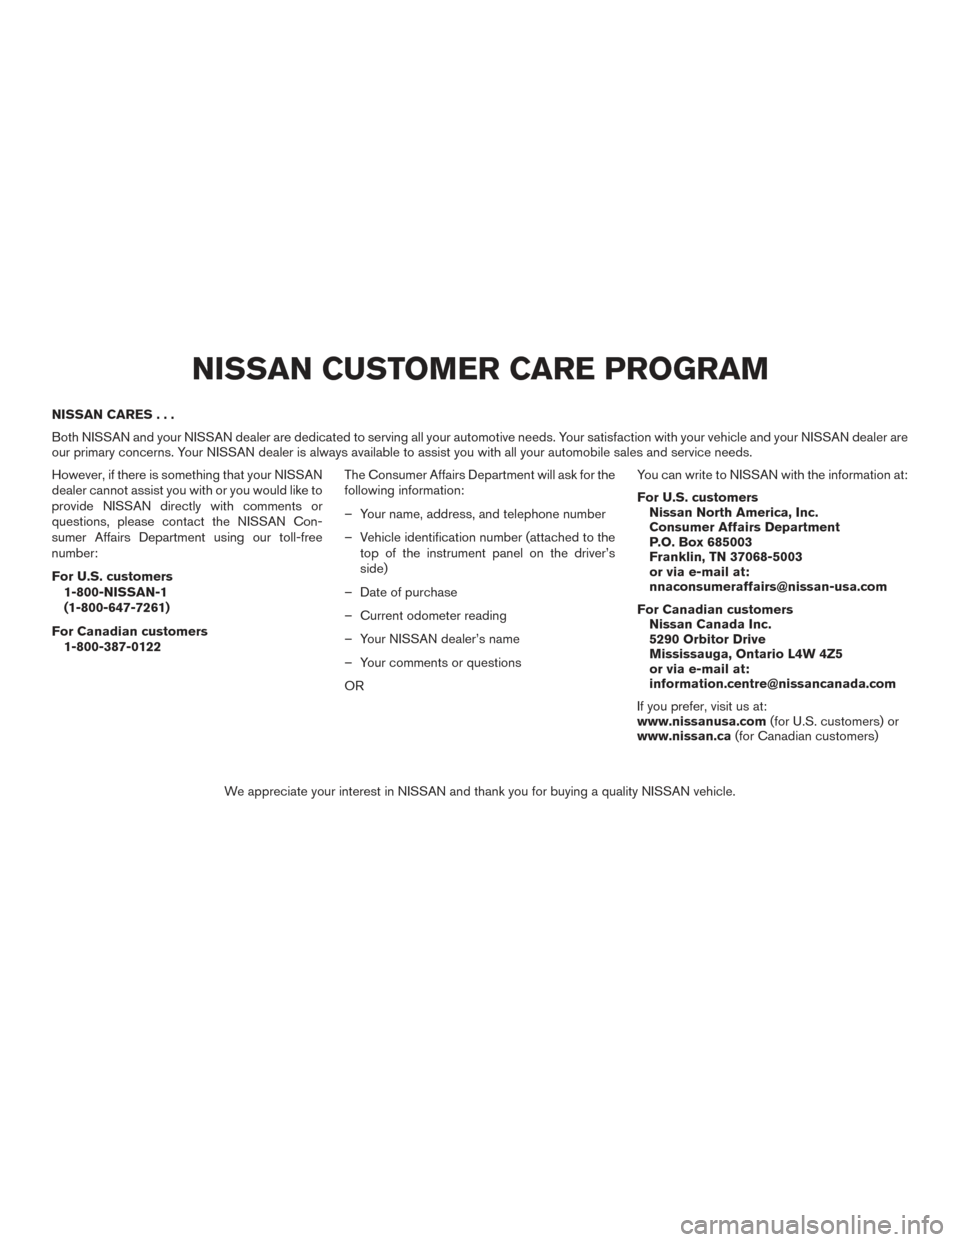 Nissan Sentra Owners Manual: Nissan Customer care program